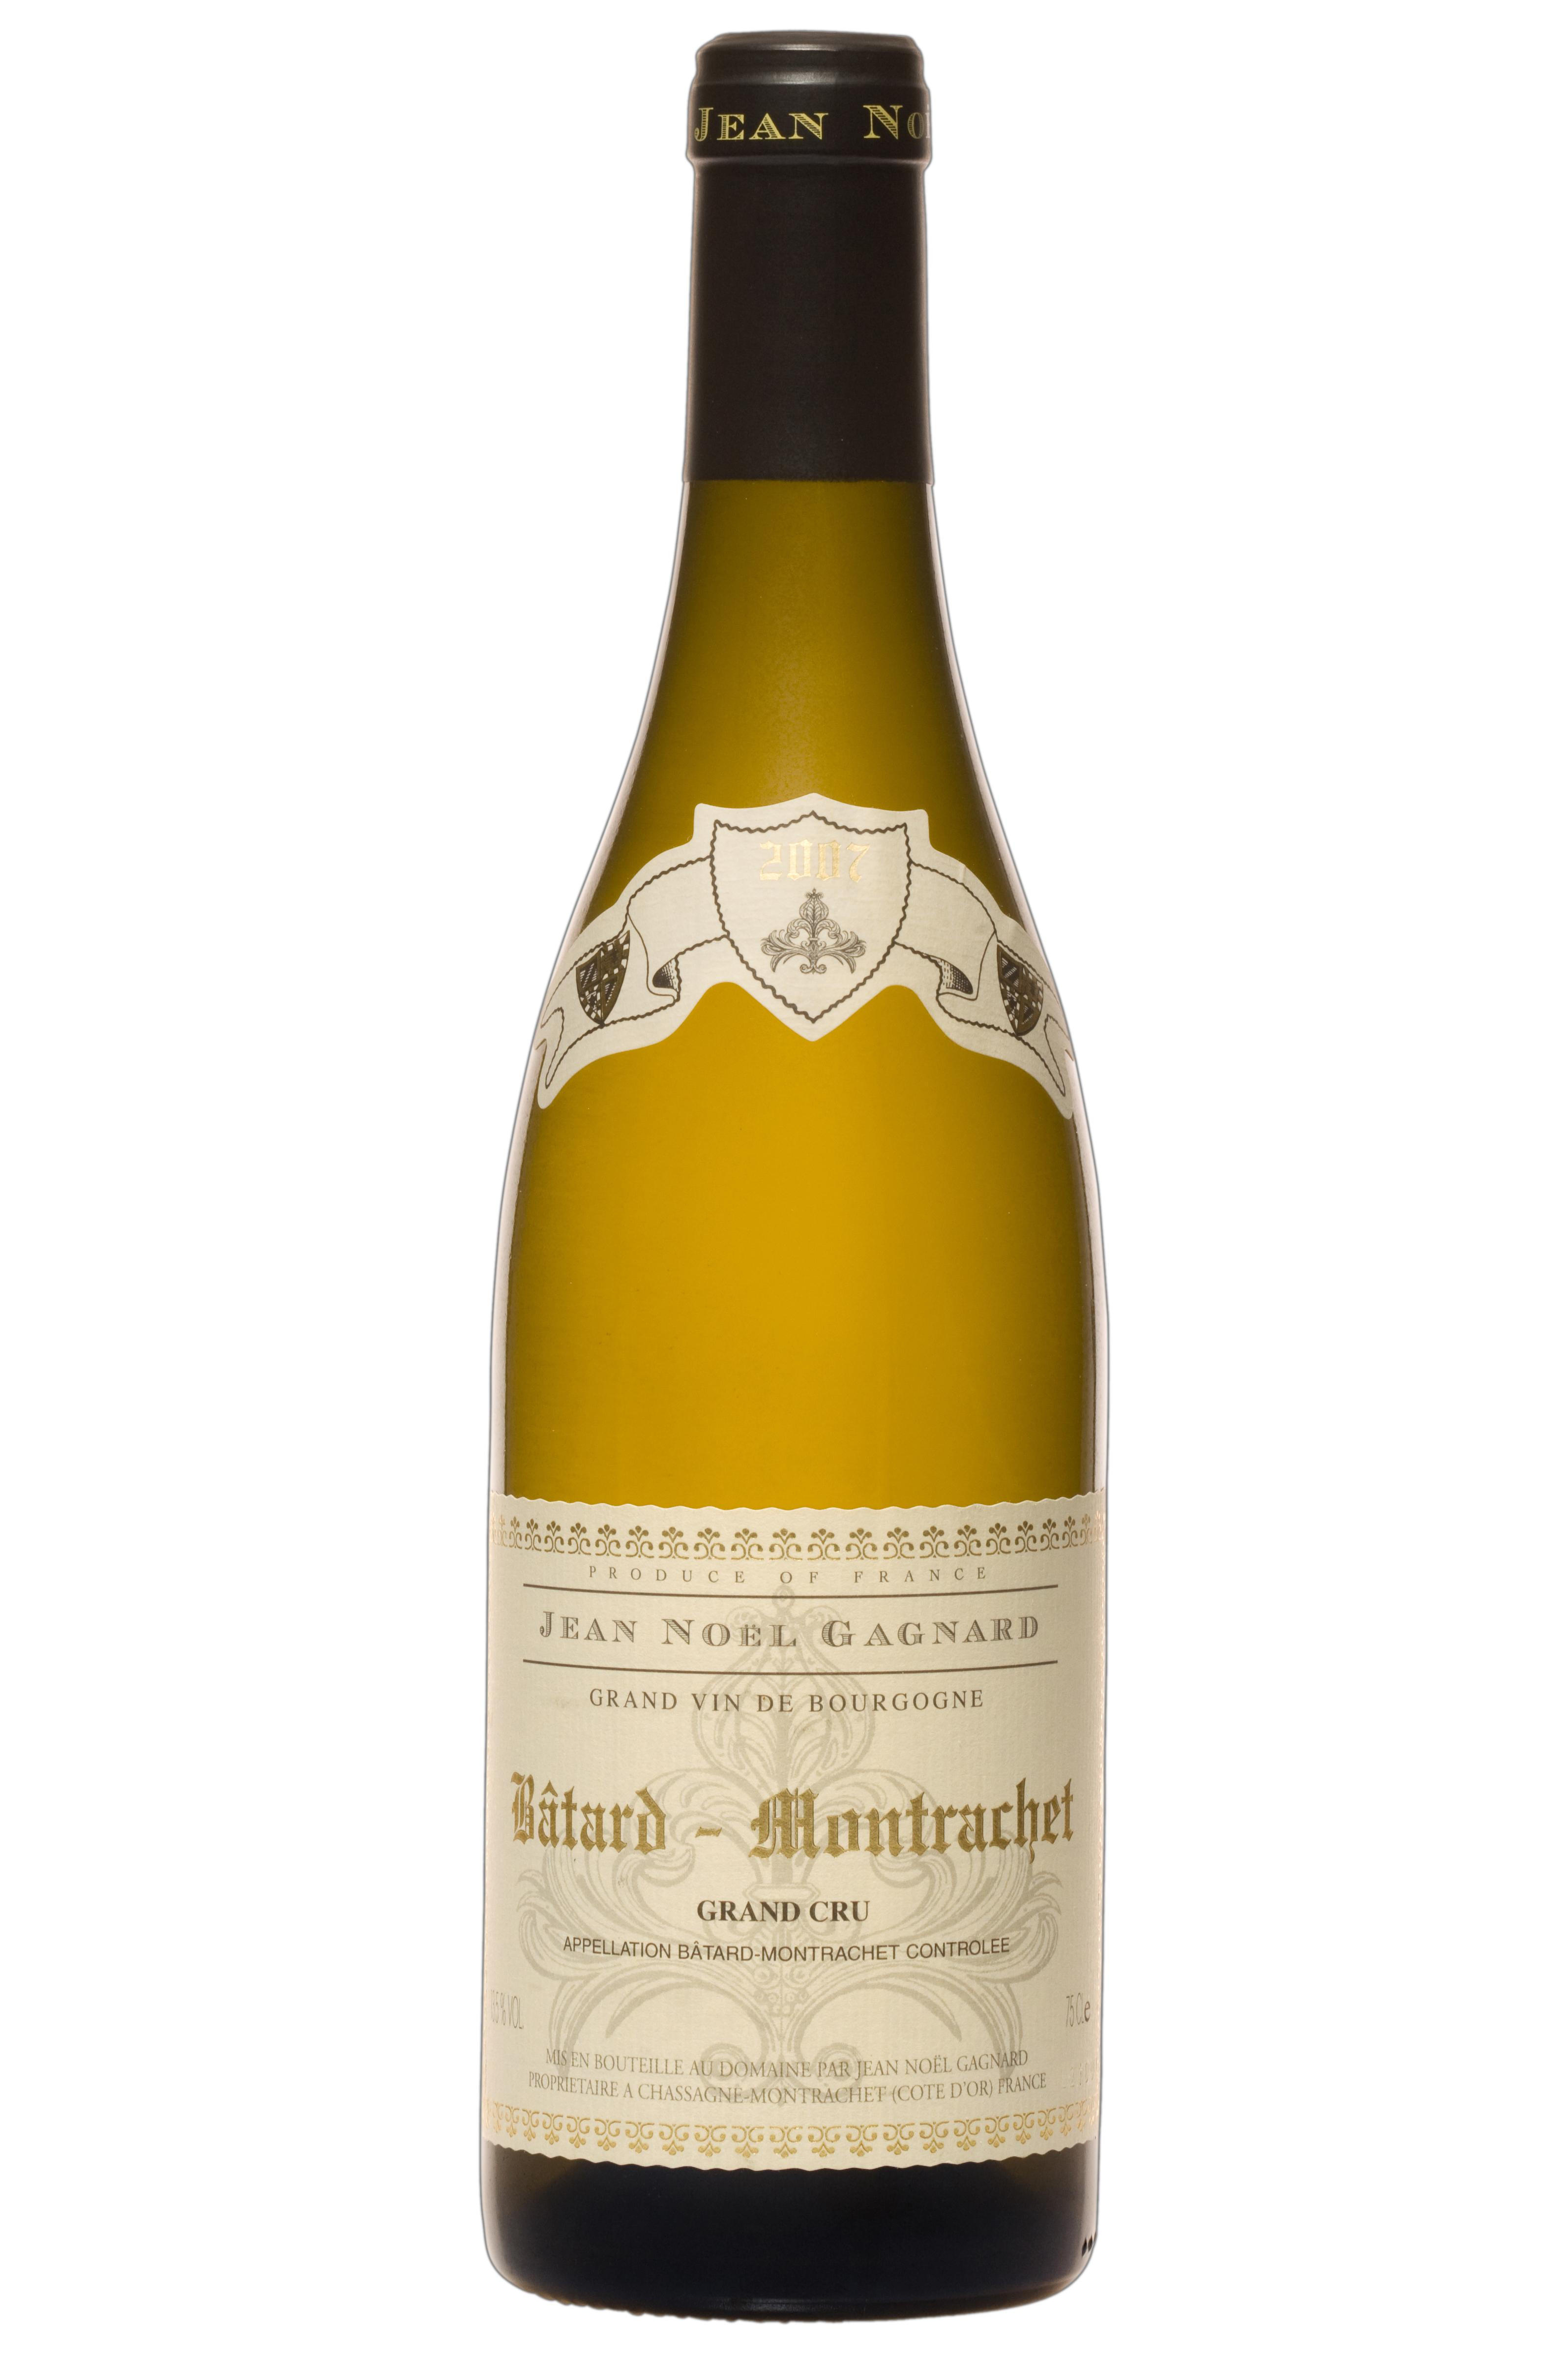 Buy 2015 Bâtard Montrachet Grand Cru Domaine Jean Noël Gagnard Wine Berry Bros Rudd